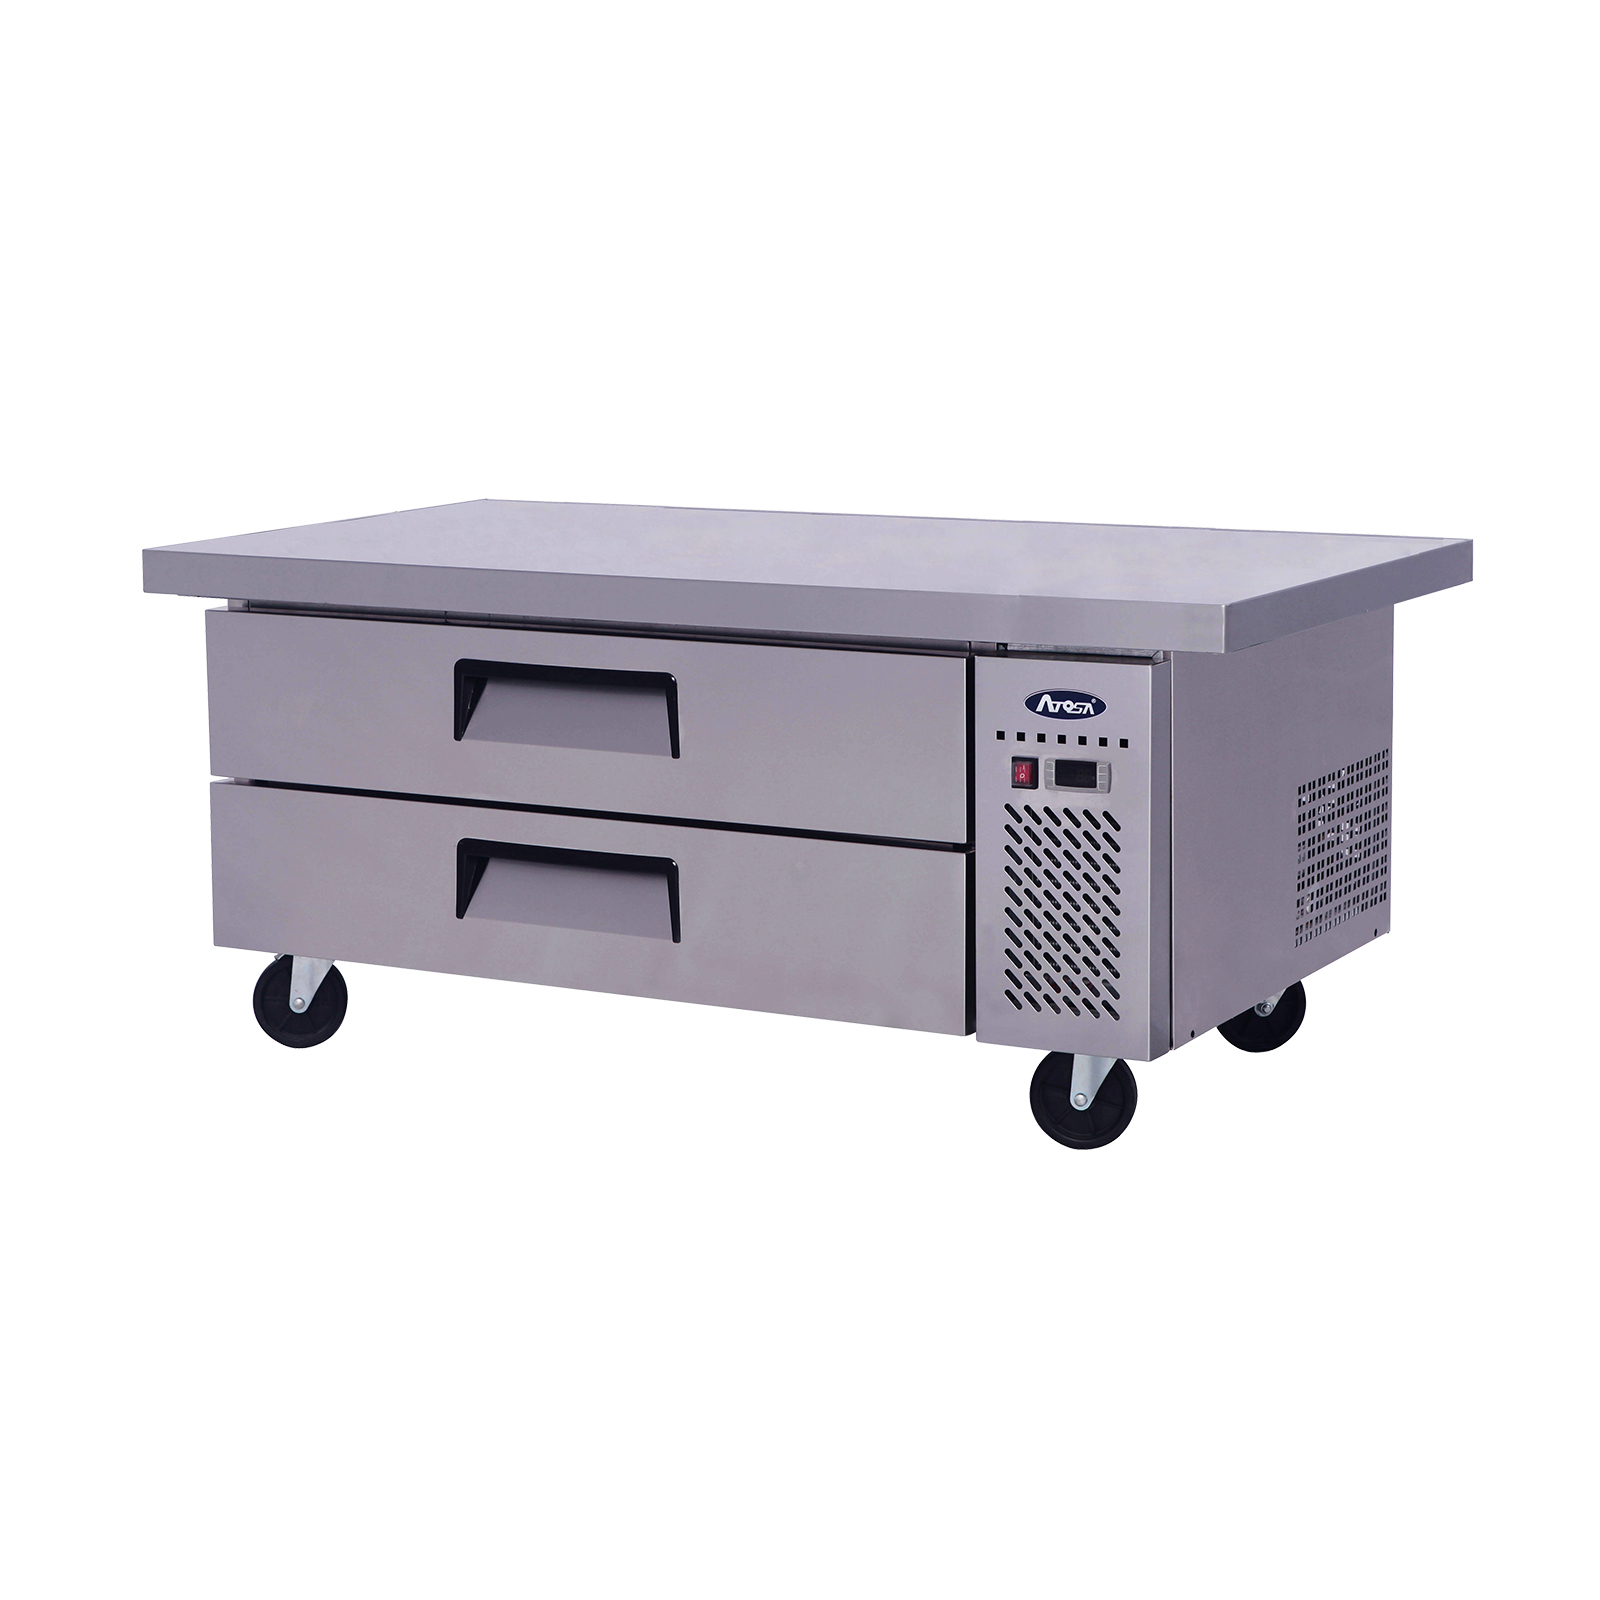 Atosa USA MGF8452GR equipment stand, refrigerated base